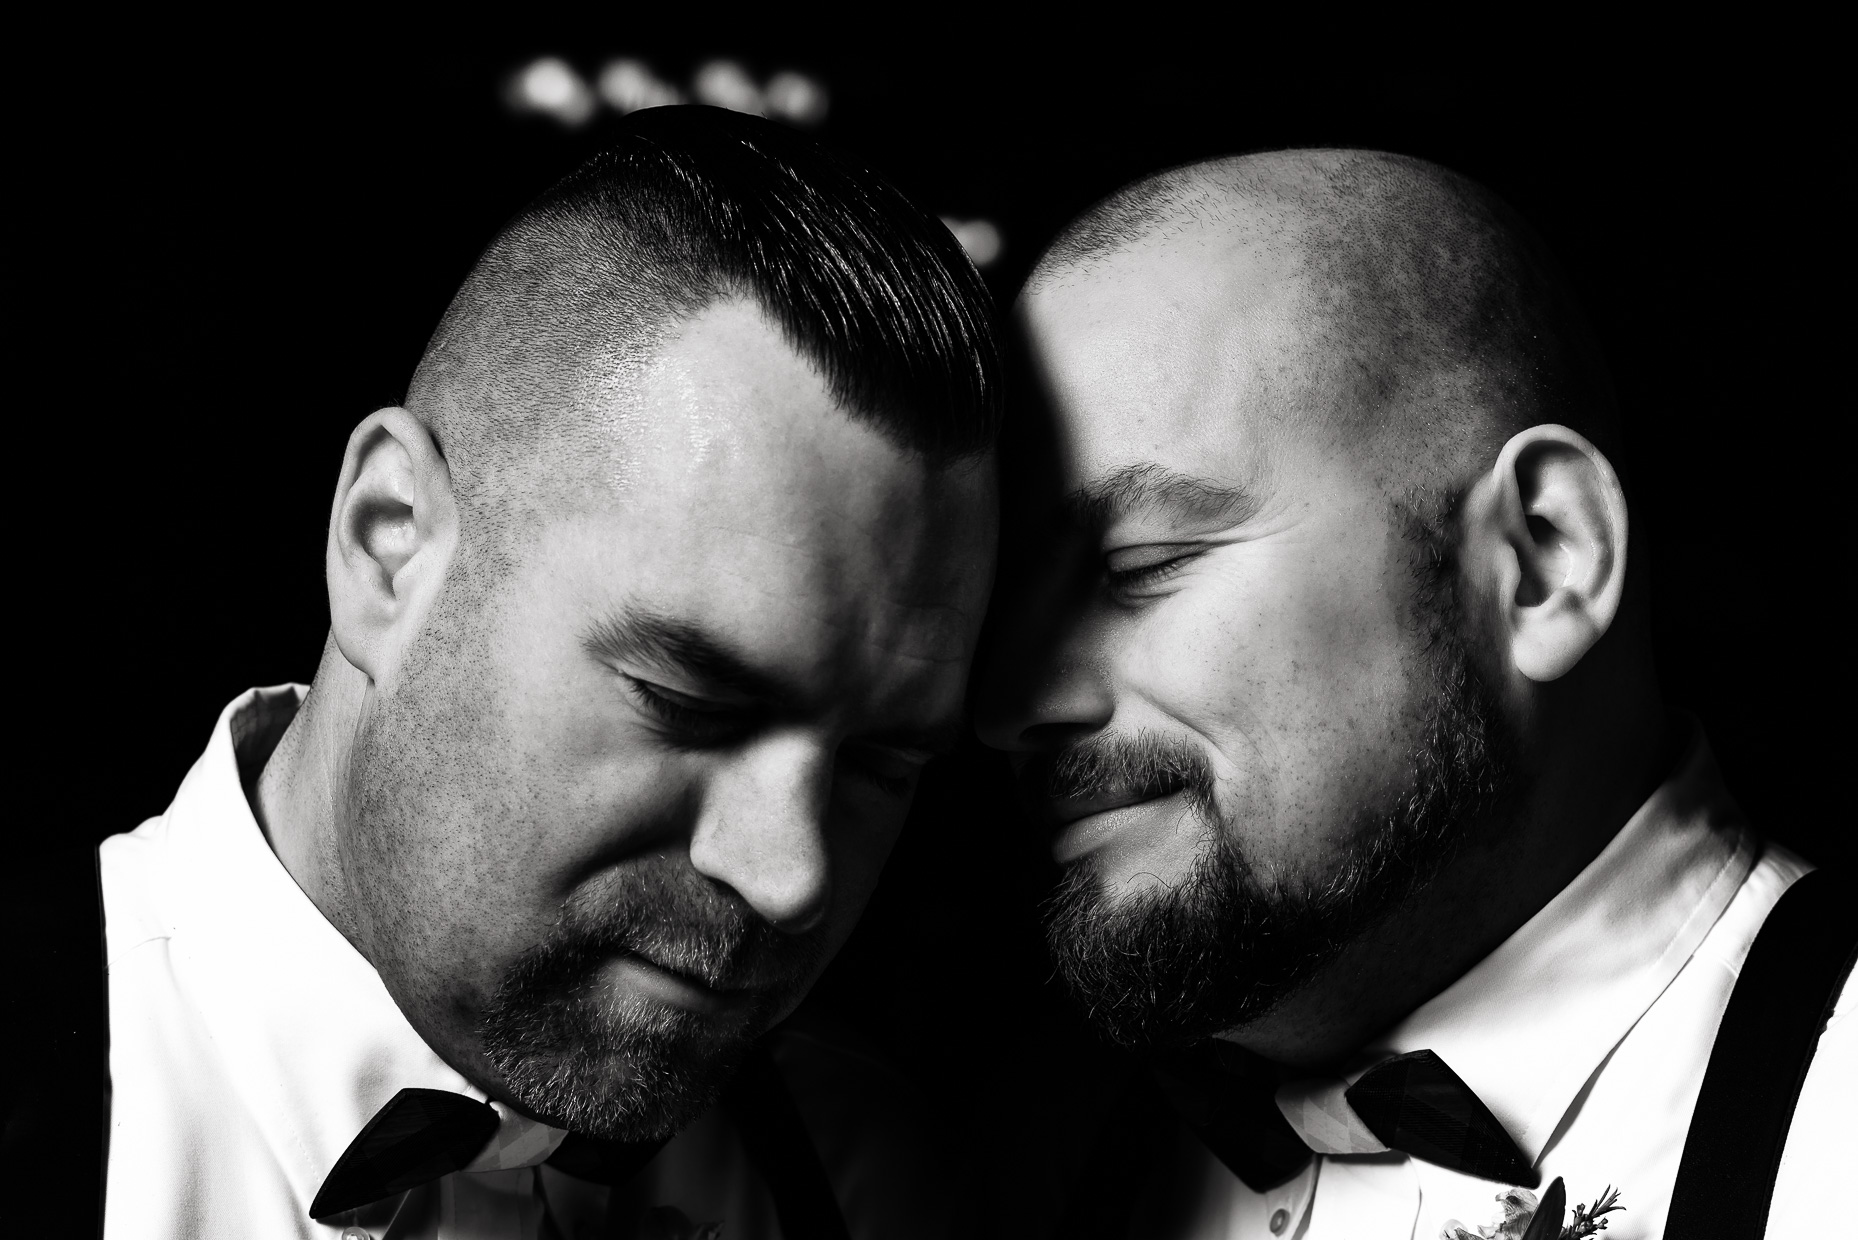 austin-wedding-photographers-same-sex-marriage-gay